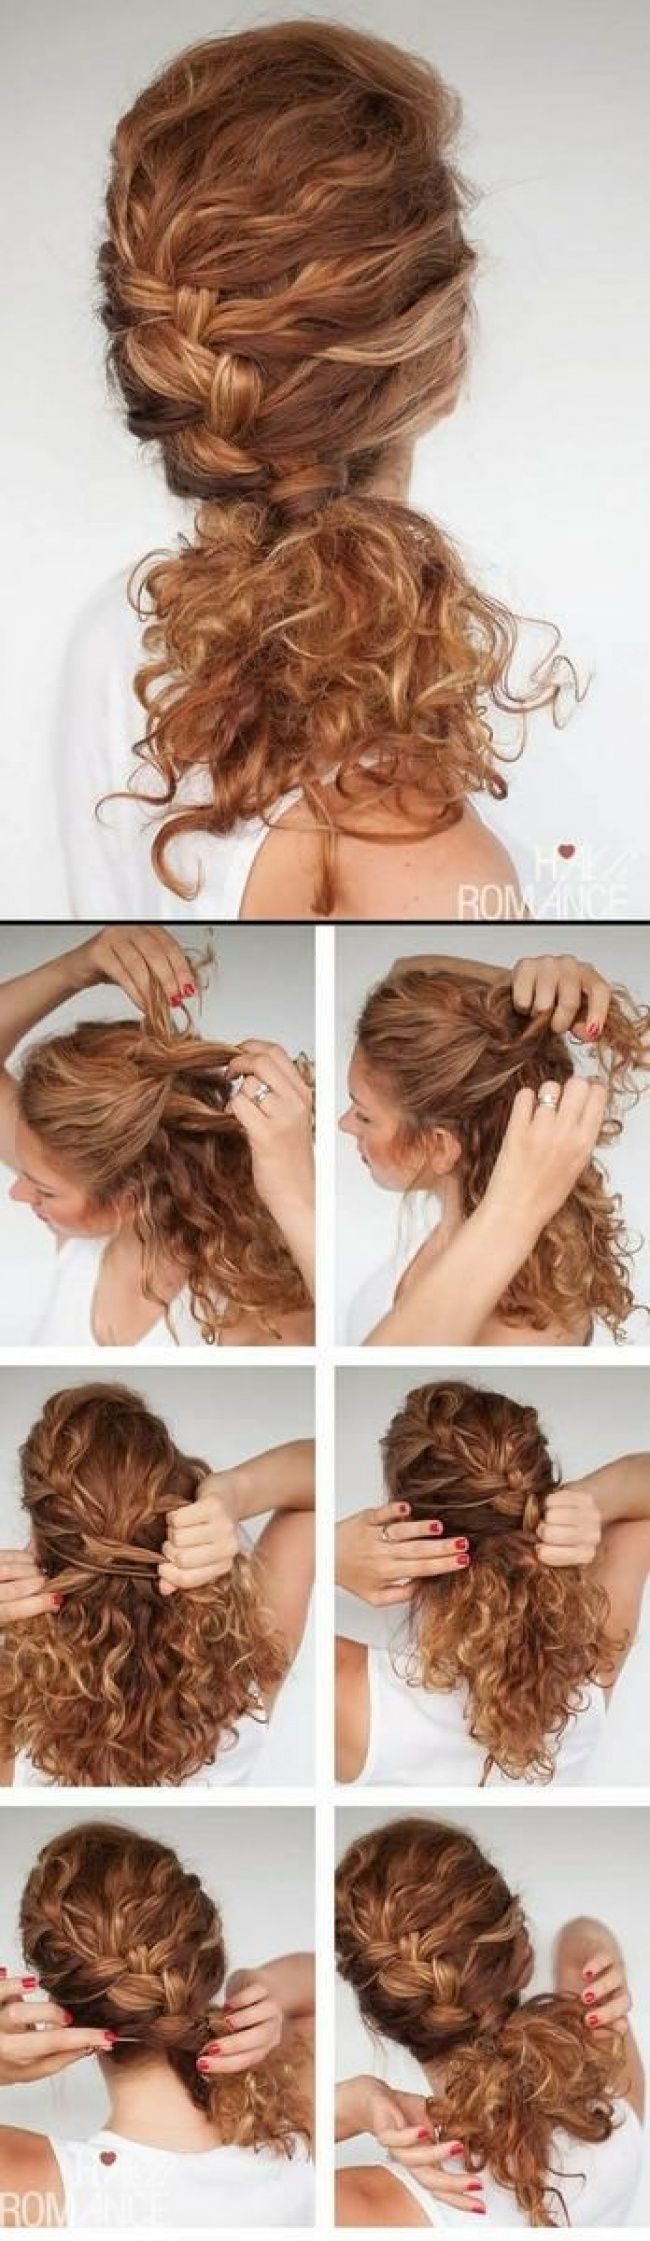 14 fantastic hairstyle tutorials for short and naturally curly hair –